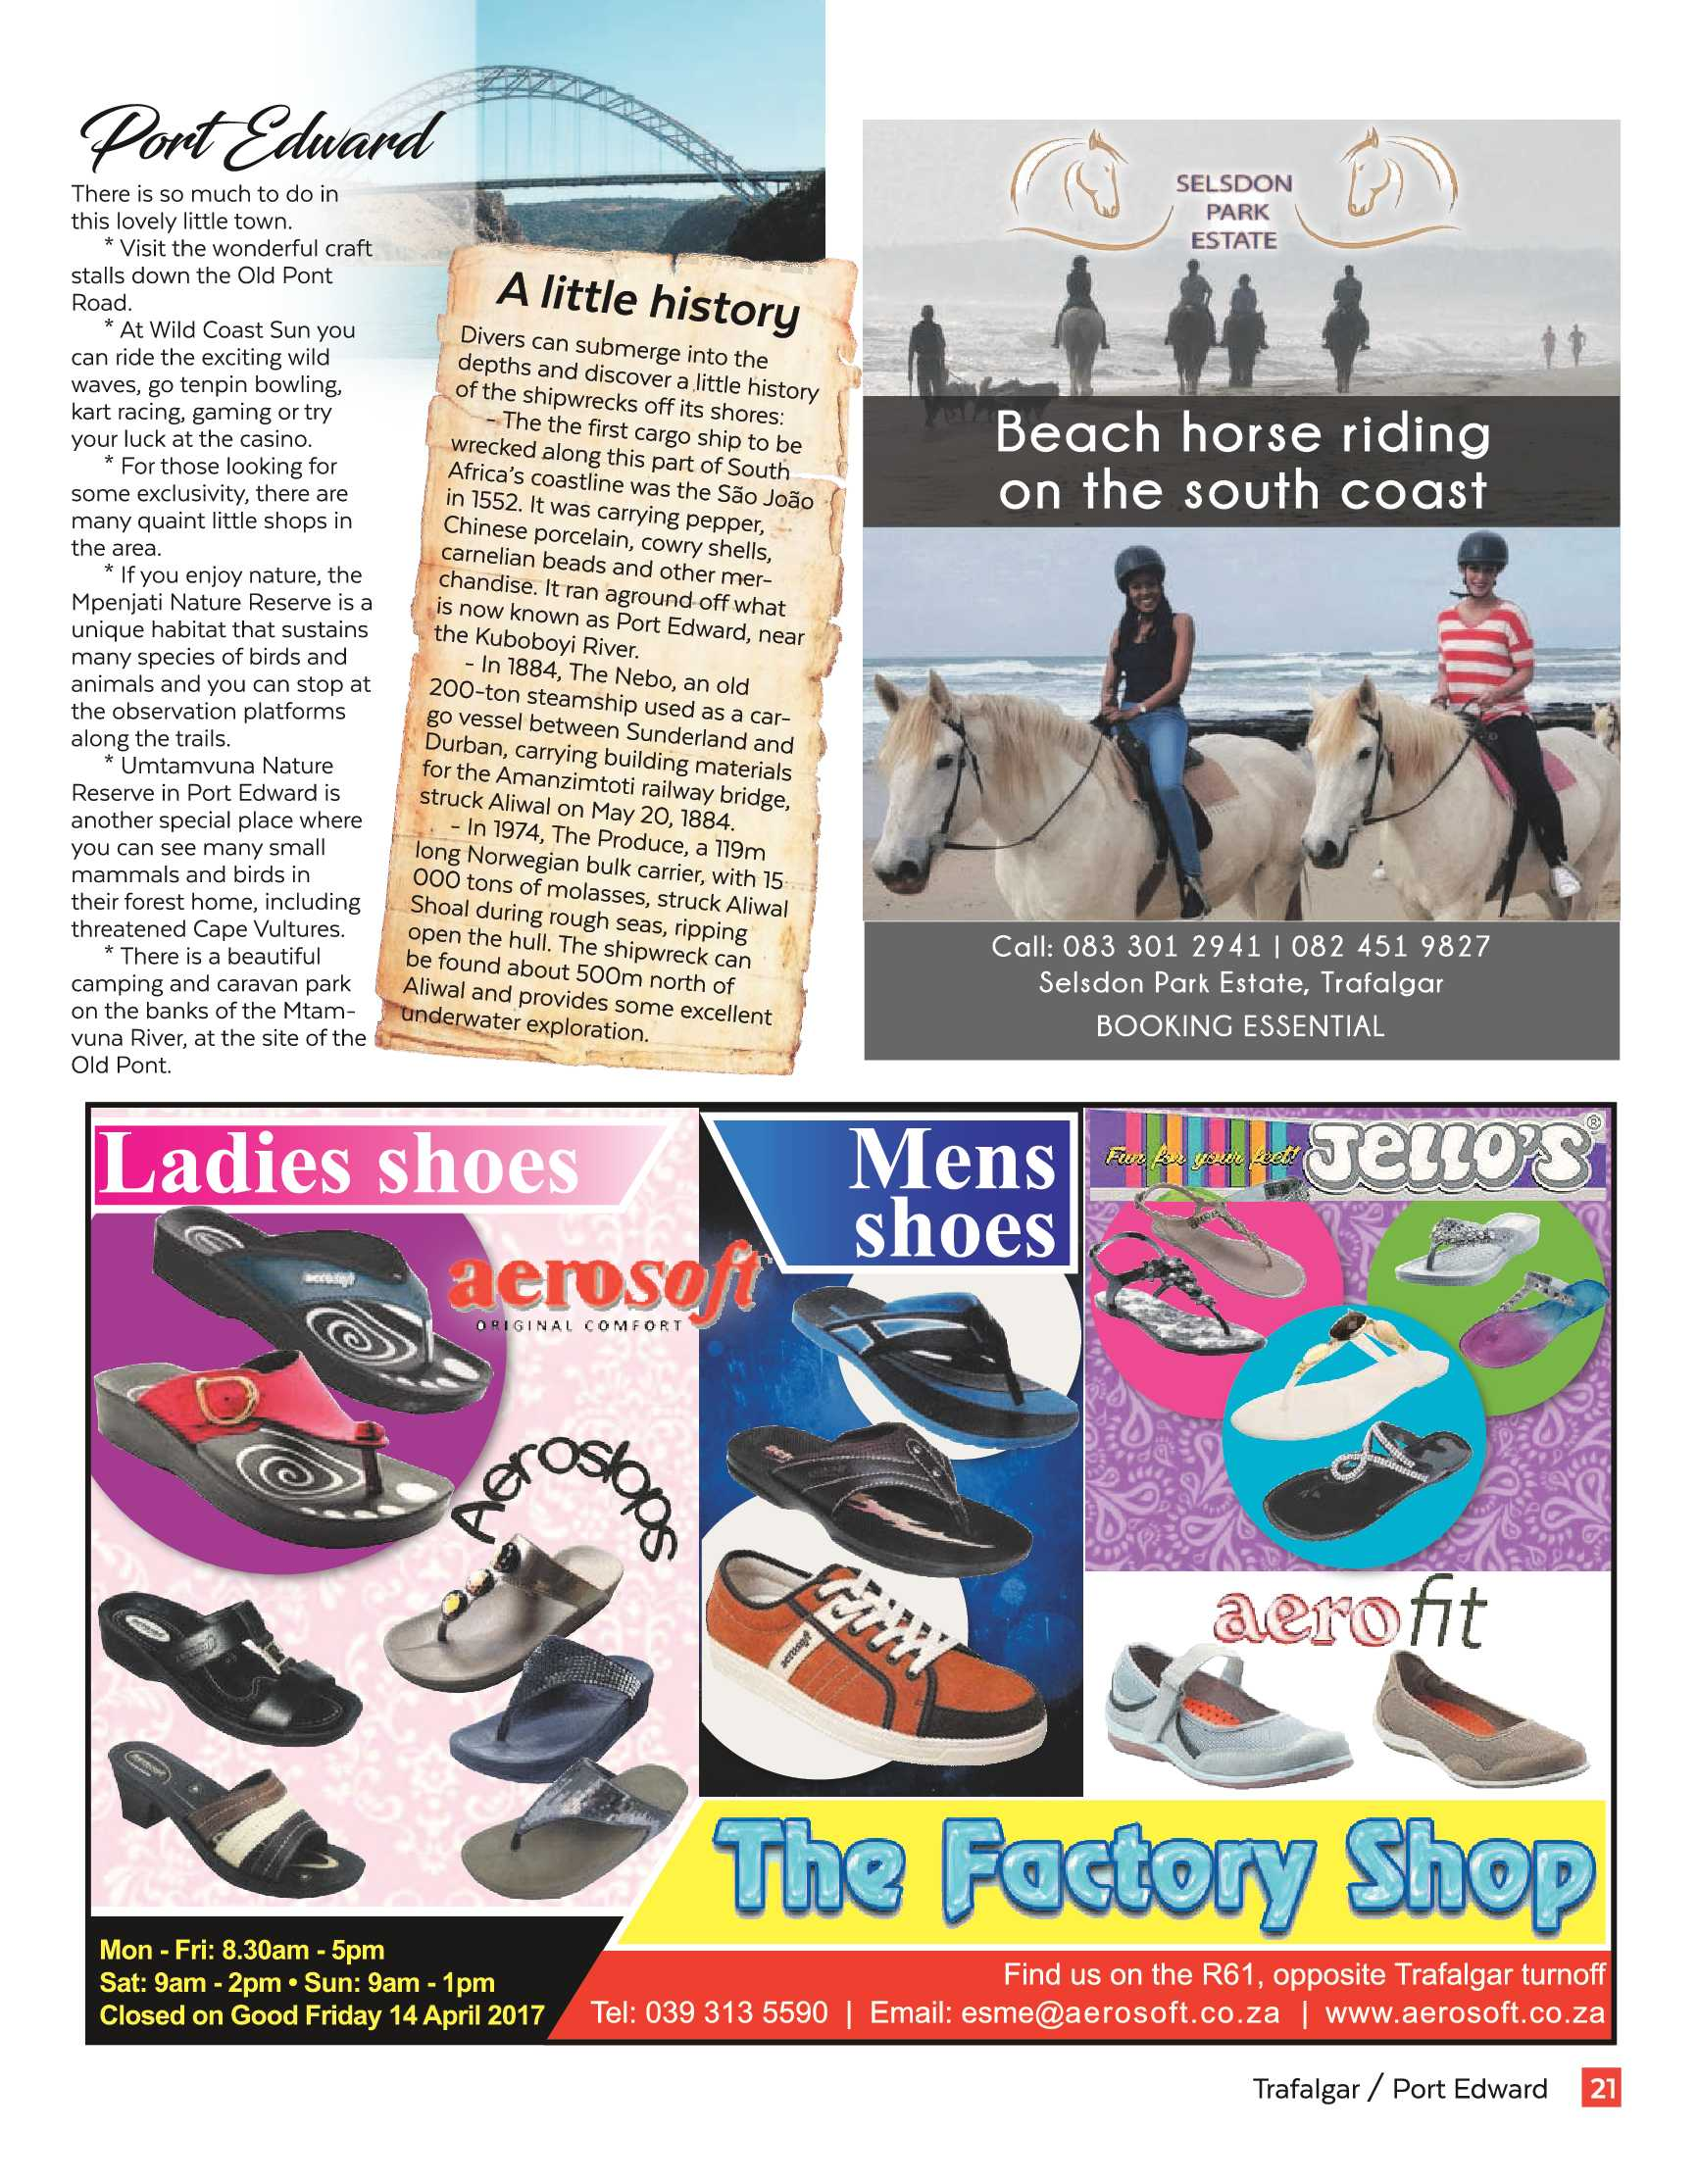 december-holiday-guide-epapers-page-21